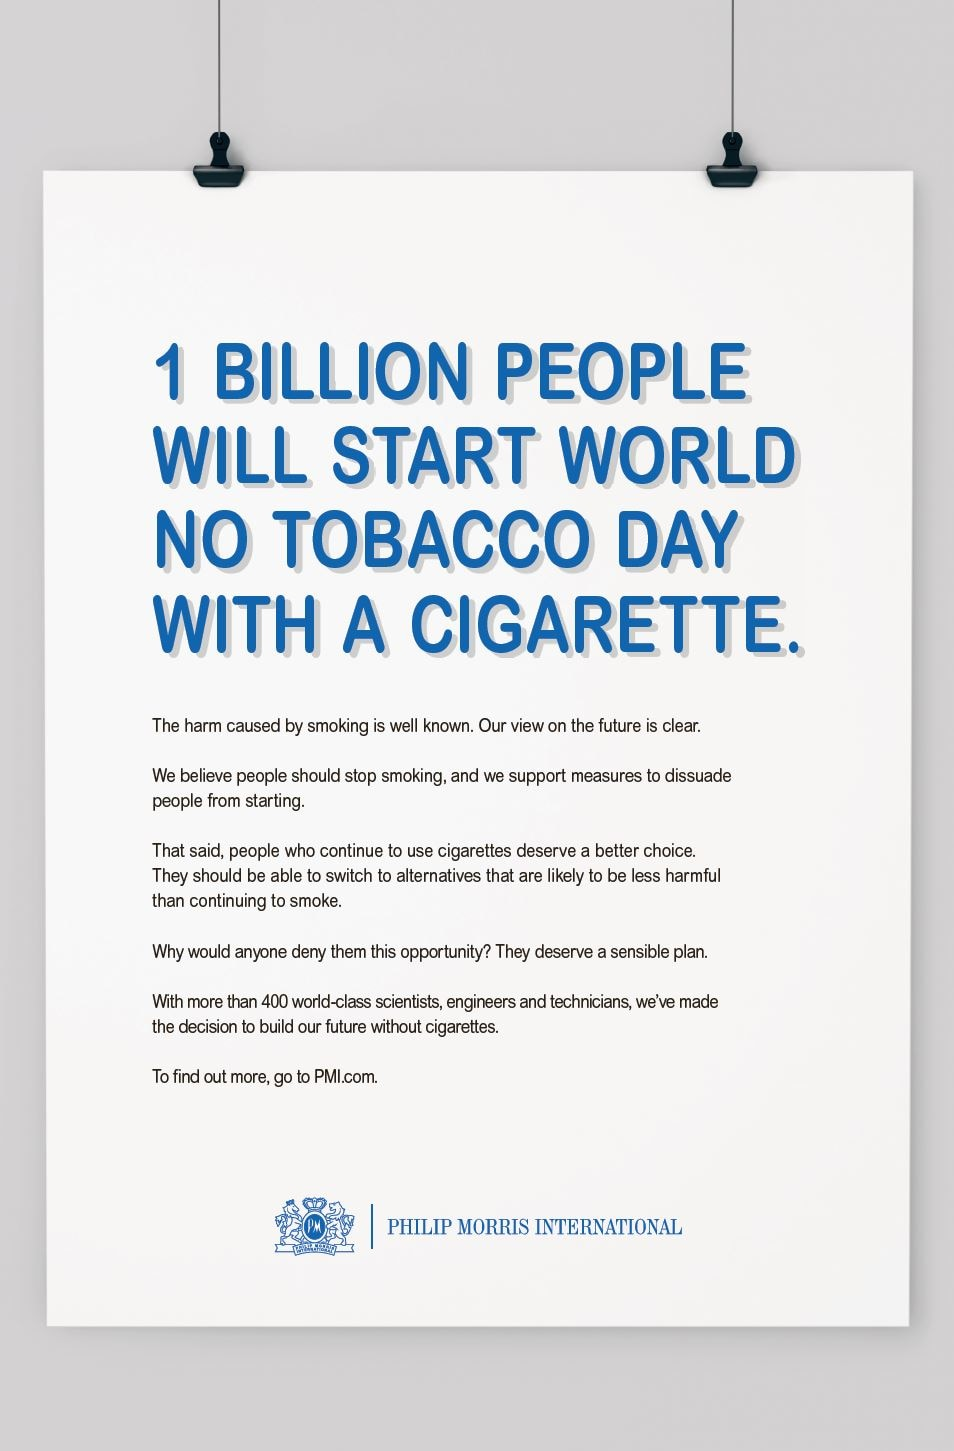 Philip Morris International calls for 'World No Smoking Day'